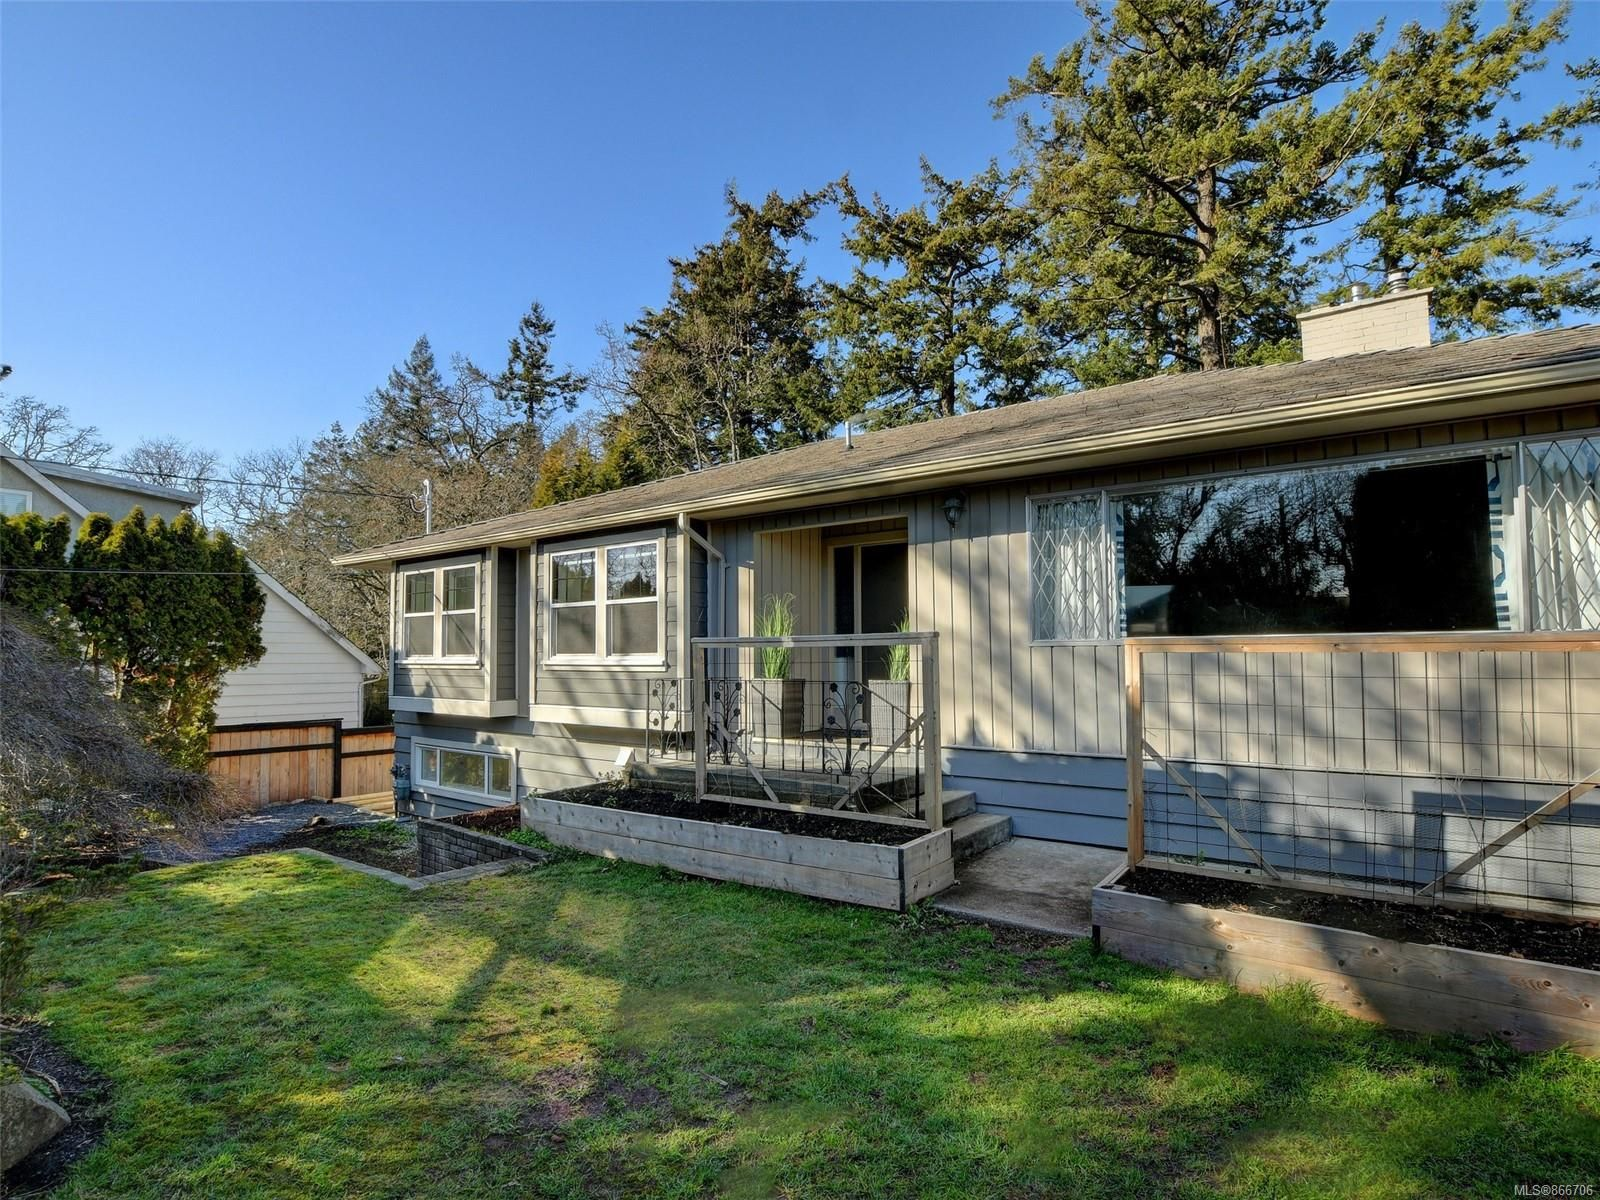 Main Photo: 1116 Nicholson St in : SE Lake Hill House for sale (Saanich East)  : MLS®# 866706